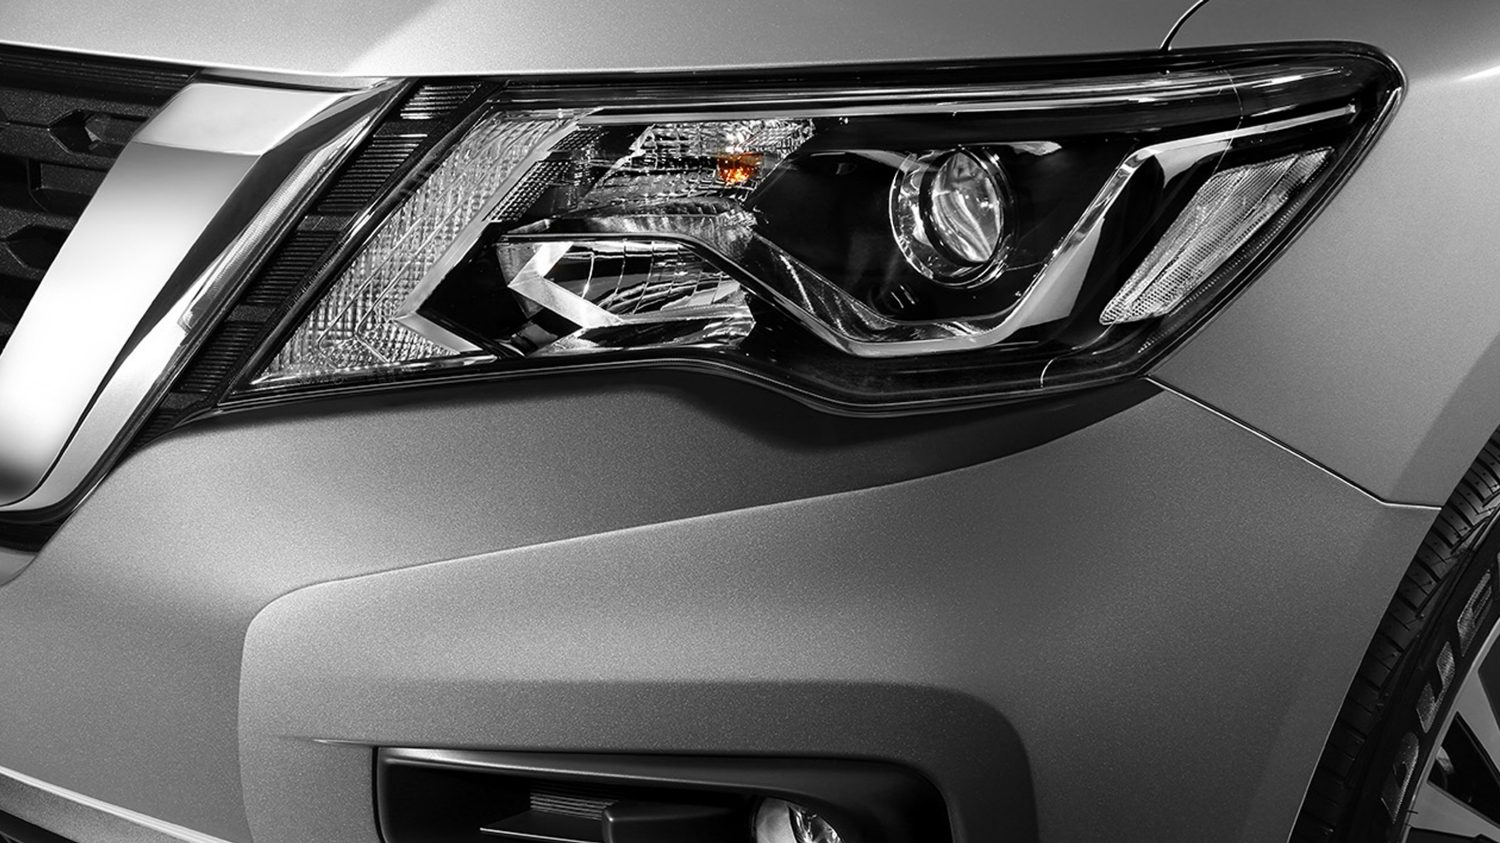 Nissan Pathfinder daytime running lights